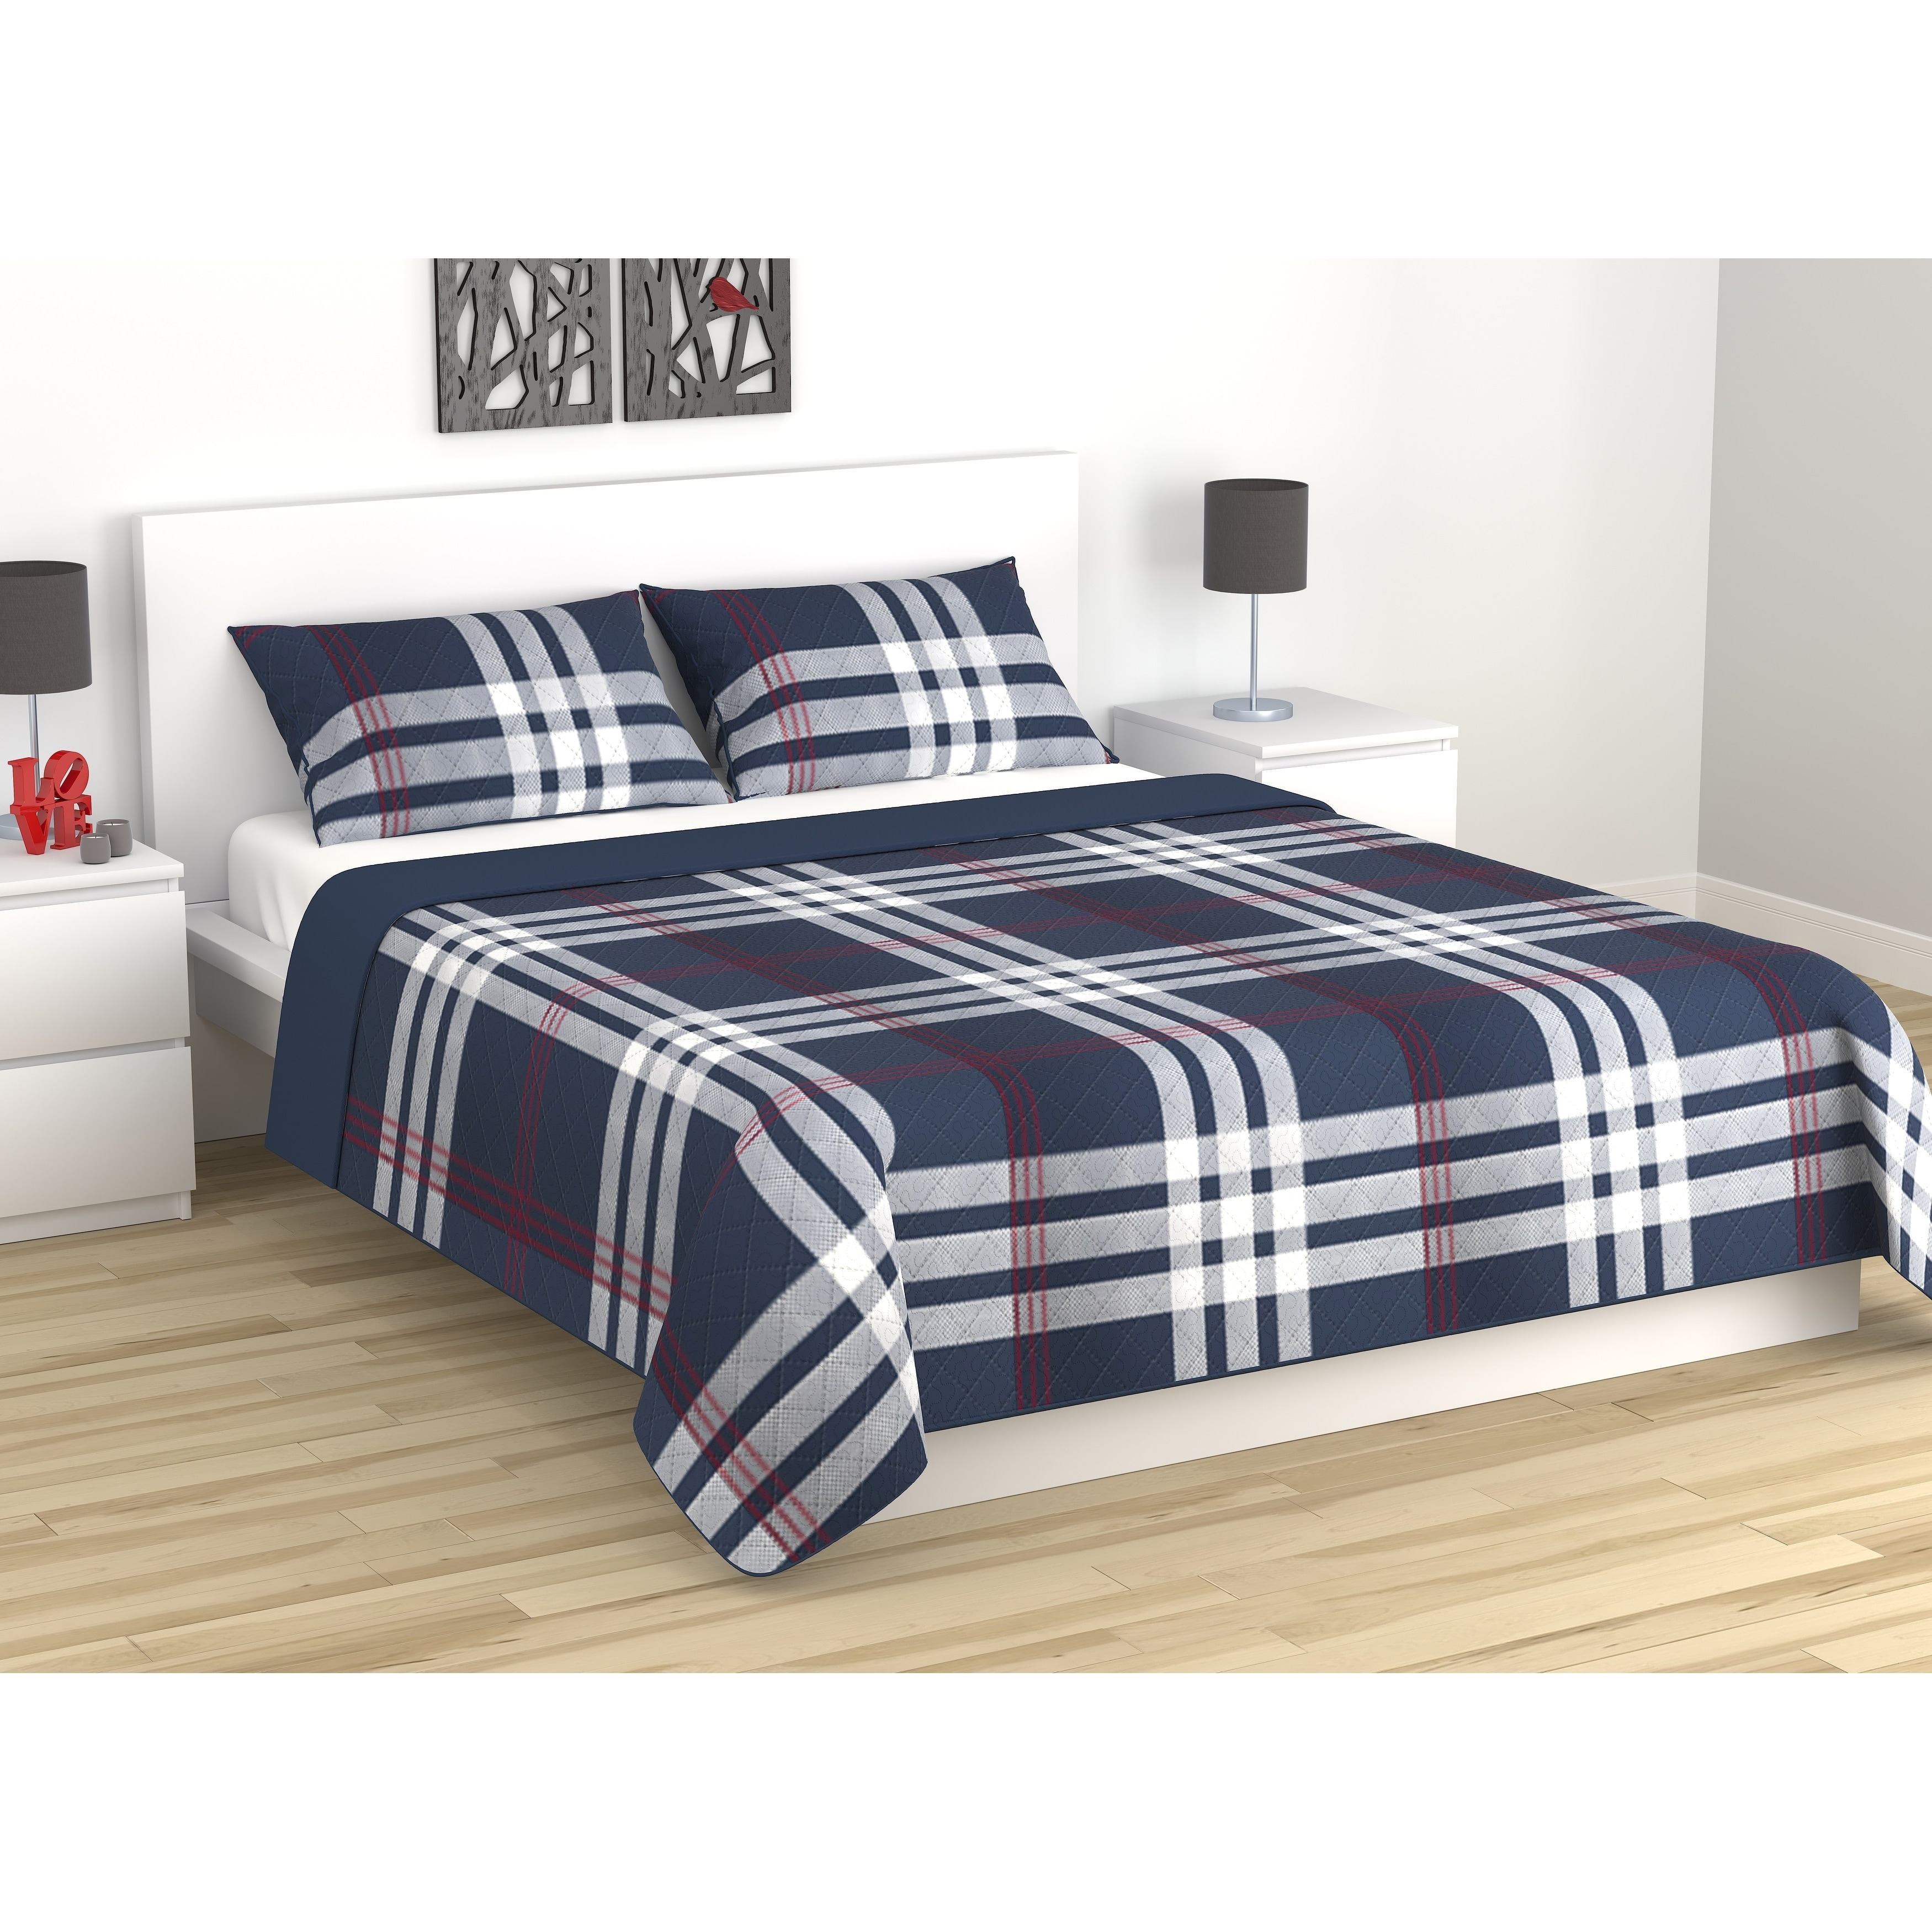 Quilt/Blanket Set 3 Pieces Twilight Collection Full-Queen Simple Plaid